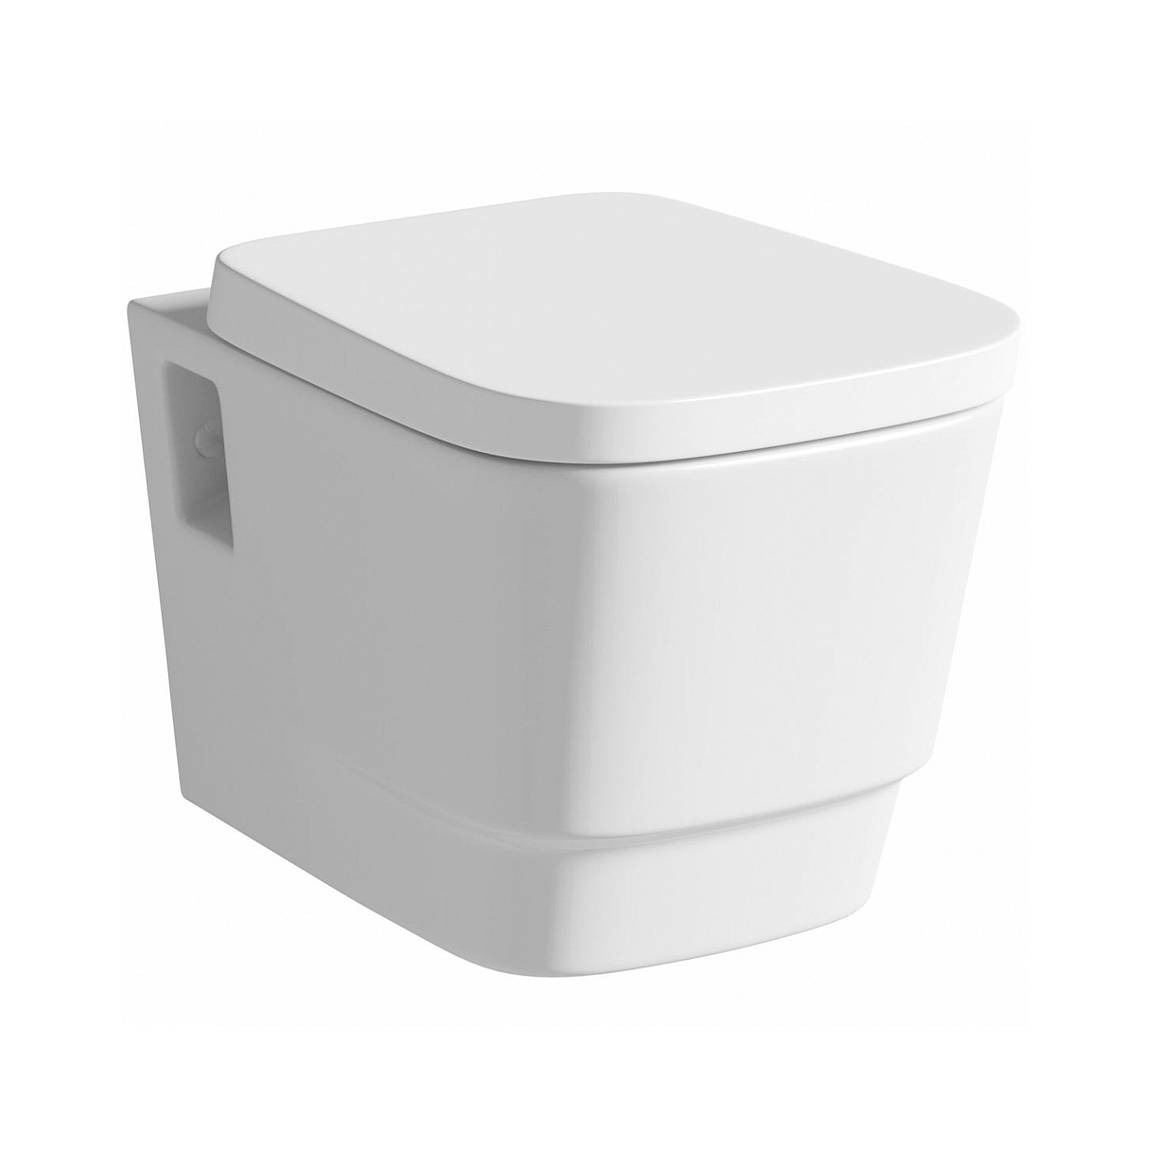 Image of Princeton Wall Hung Toilet inc Luxury Soft Close Seat